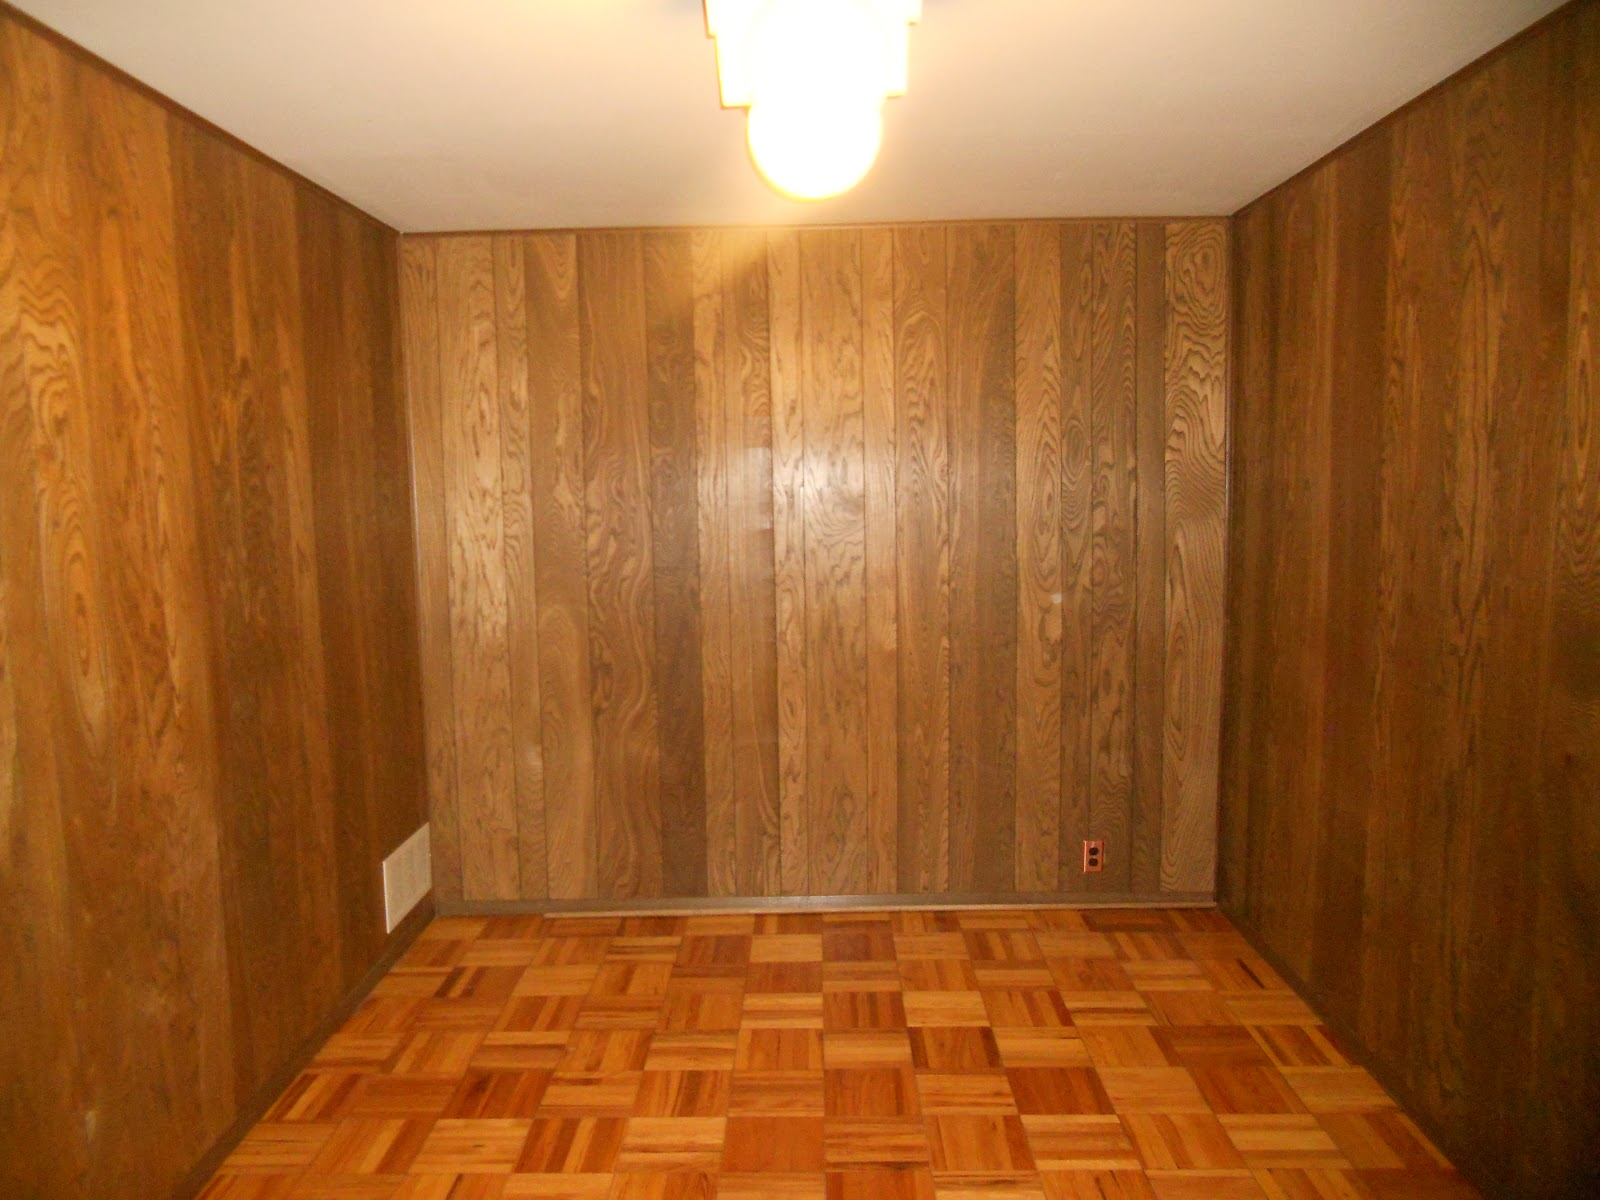 My full thyme life challenge accepted How to cover old wood paneling